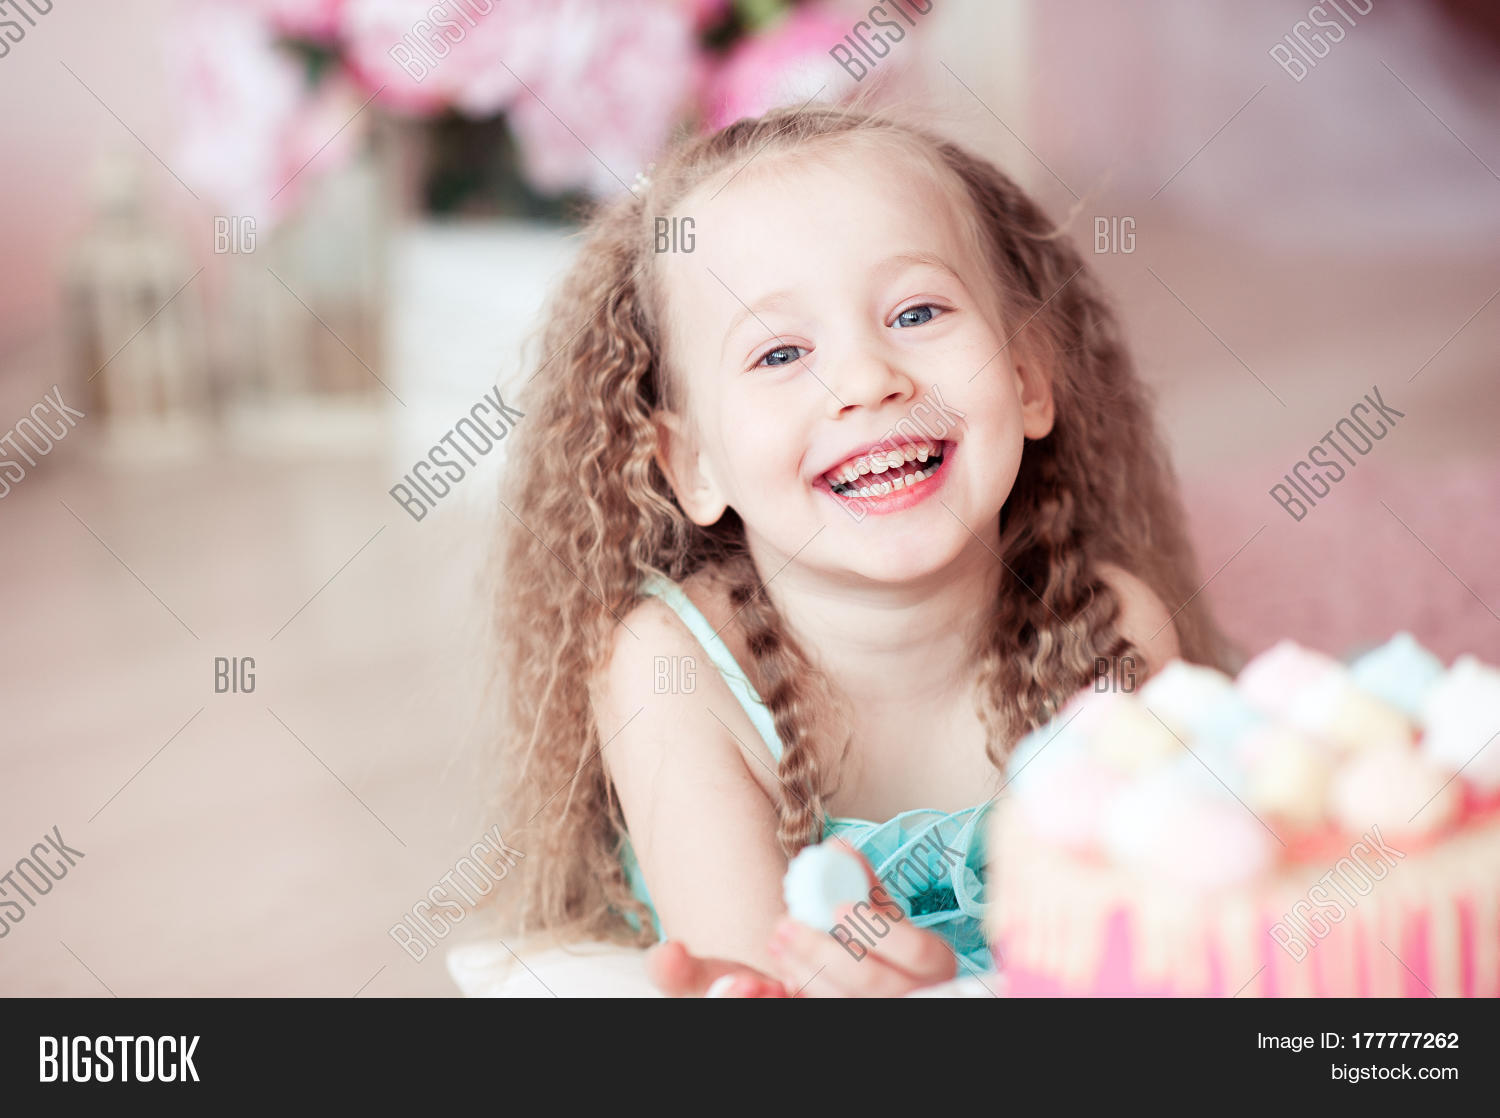 Smiling Baby Girl 3 4 Year Old Image Amp Photo